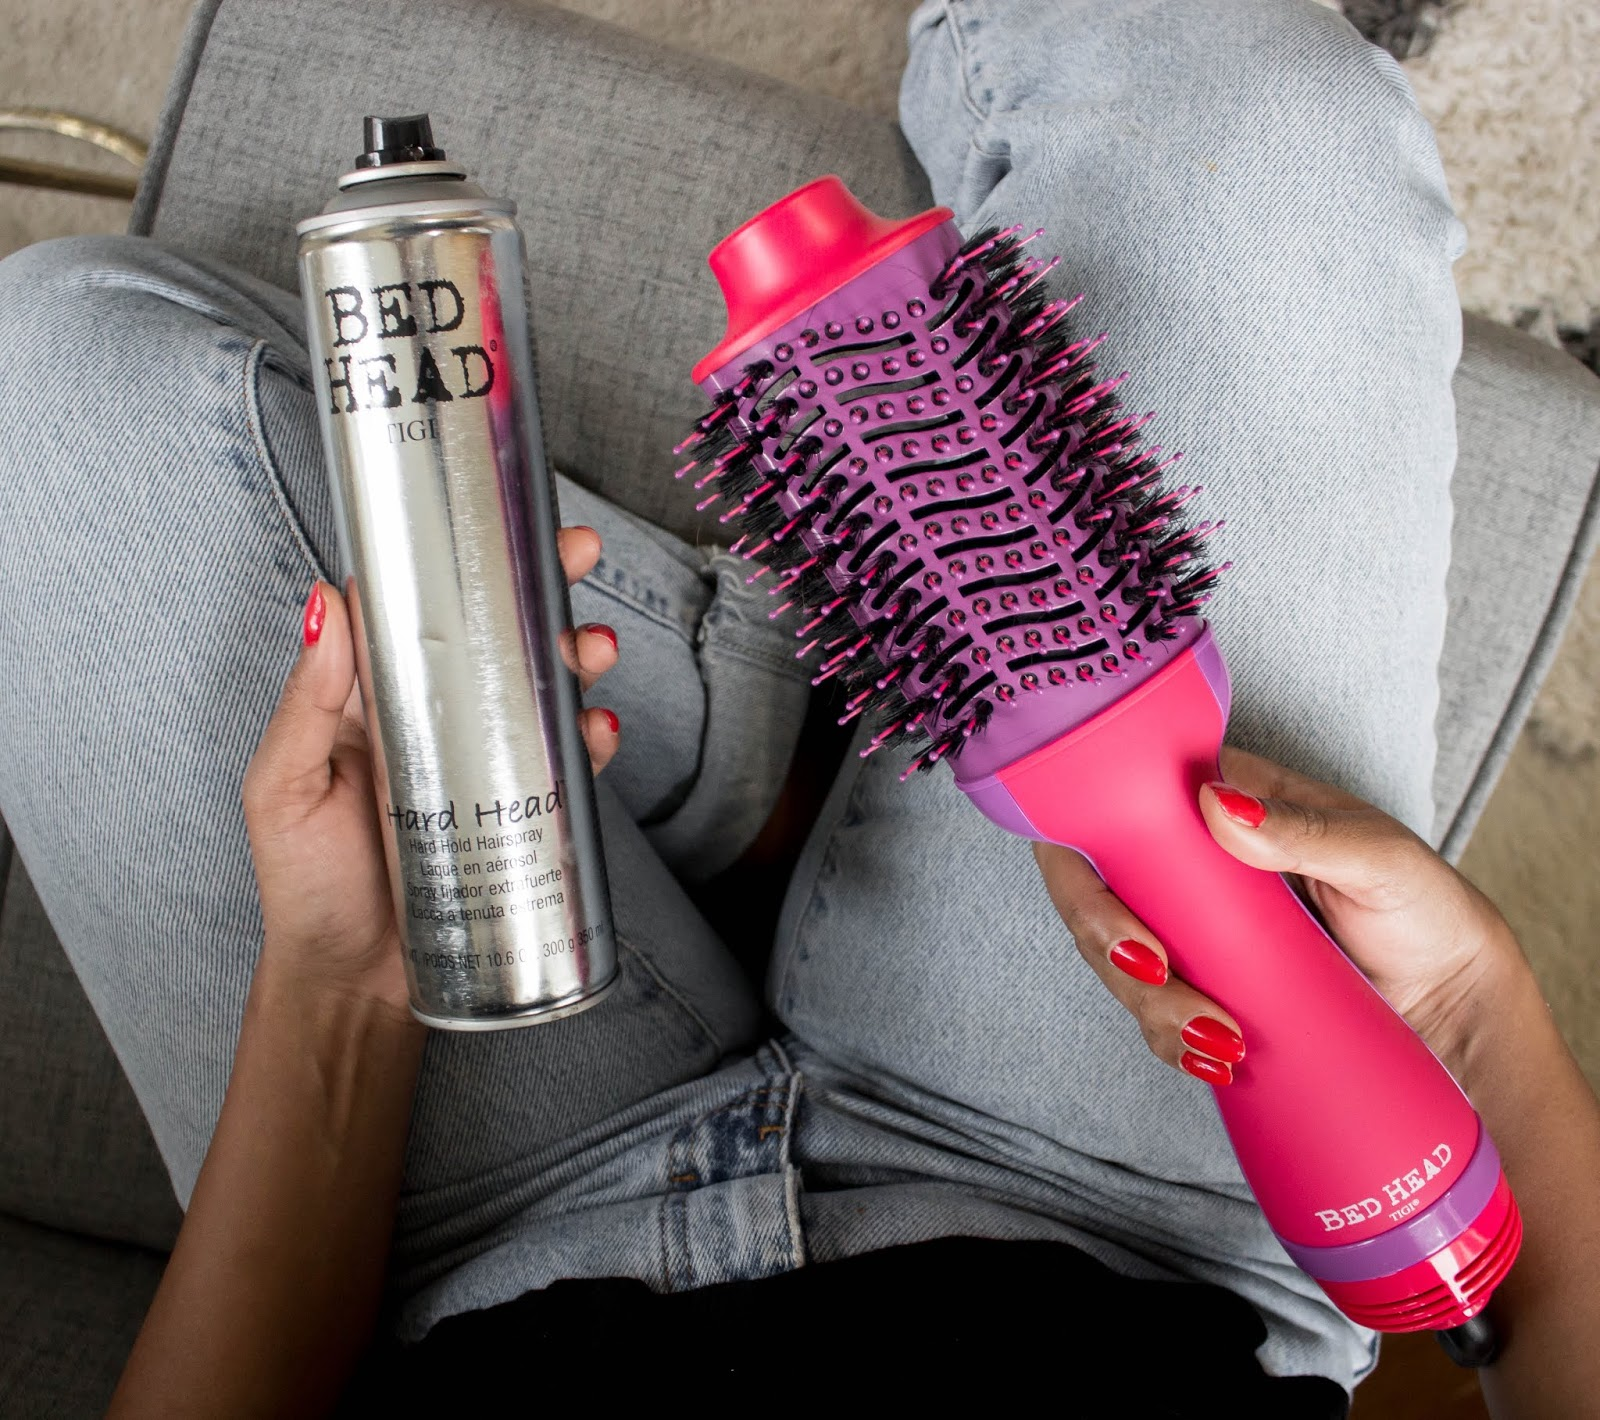 bed-head-by-tigi-hairstyling